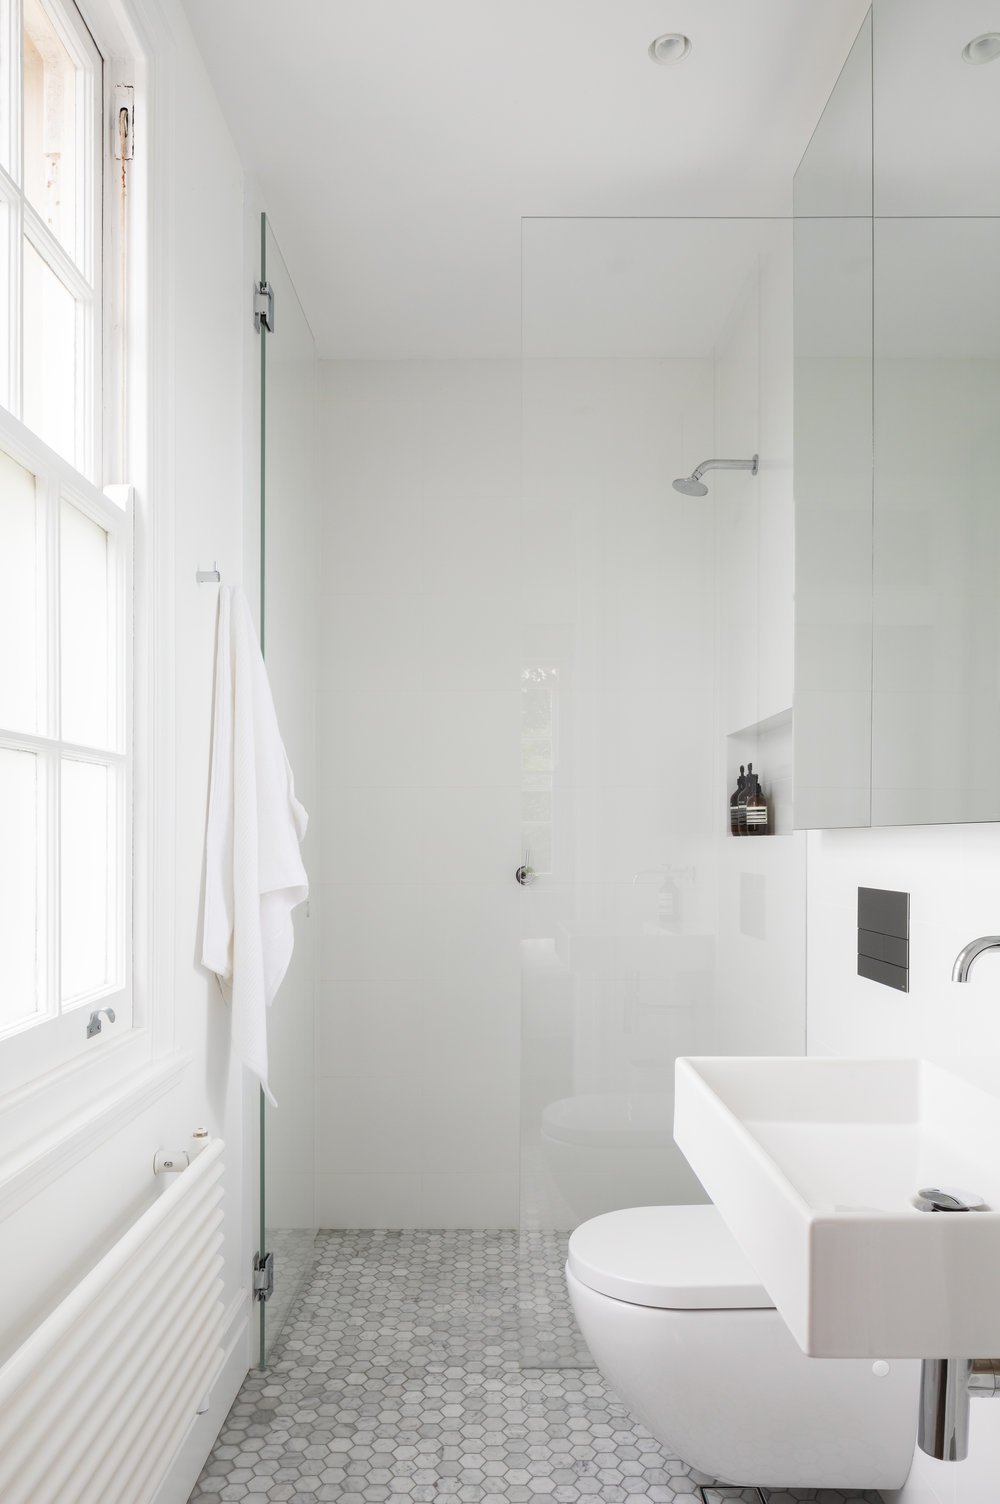 Bathroom Tagged: Bath Room, Ceramic Tile Floor, Vessel Sink, Wall Mount Sink, Enclosed Shower, Recessed Lighting, and One Piece Toilet.  K Apartment by Leibal